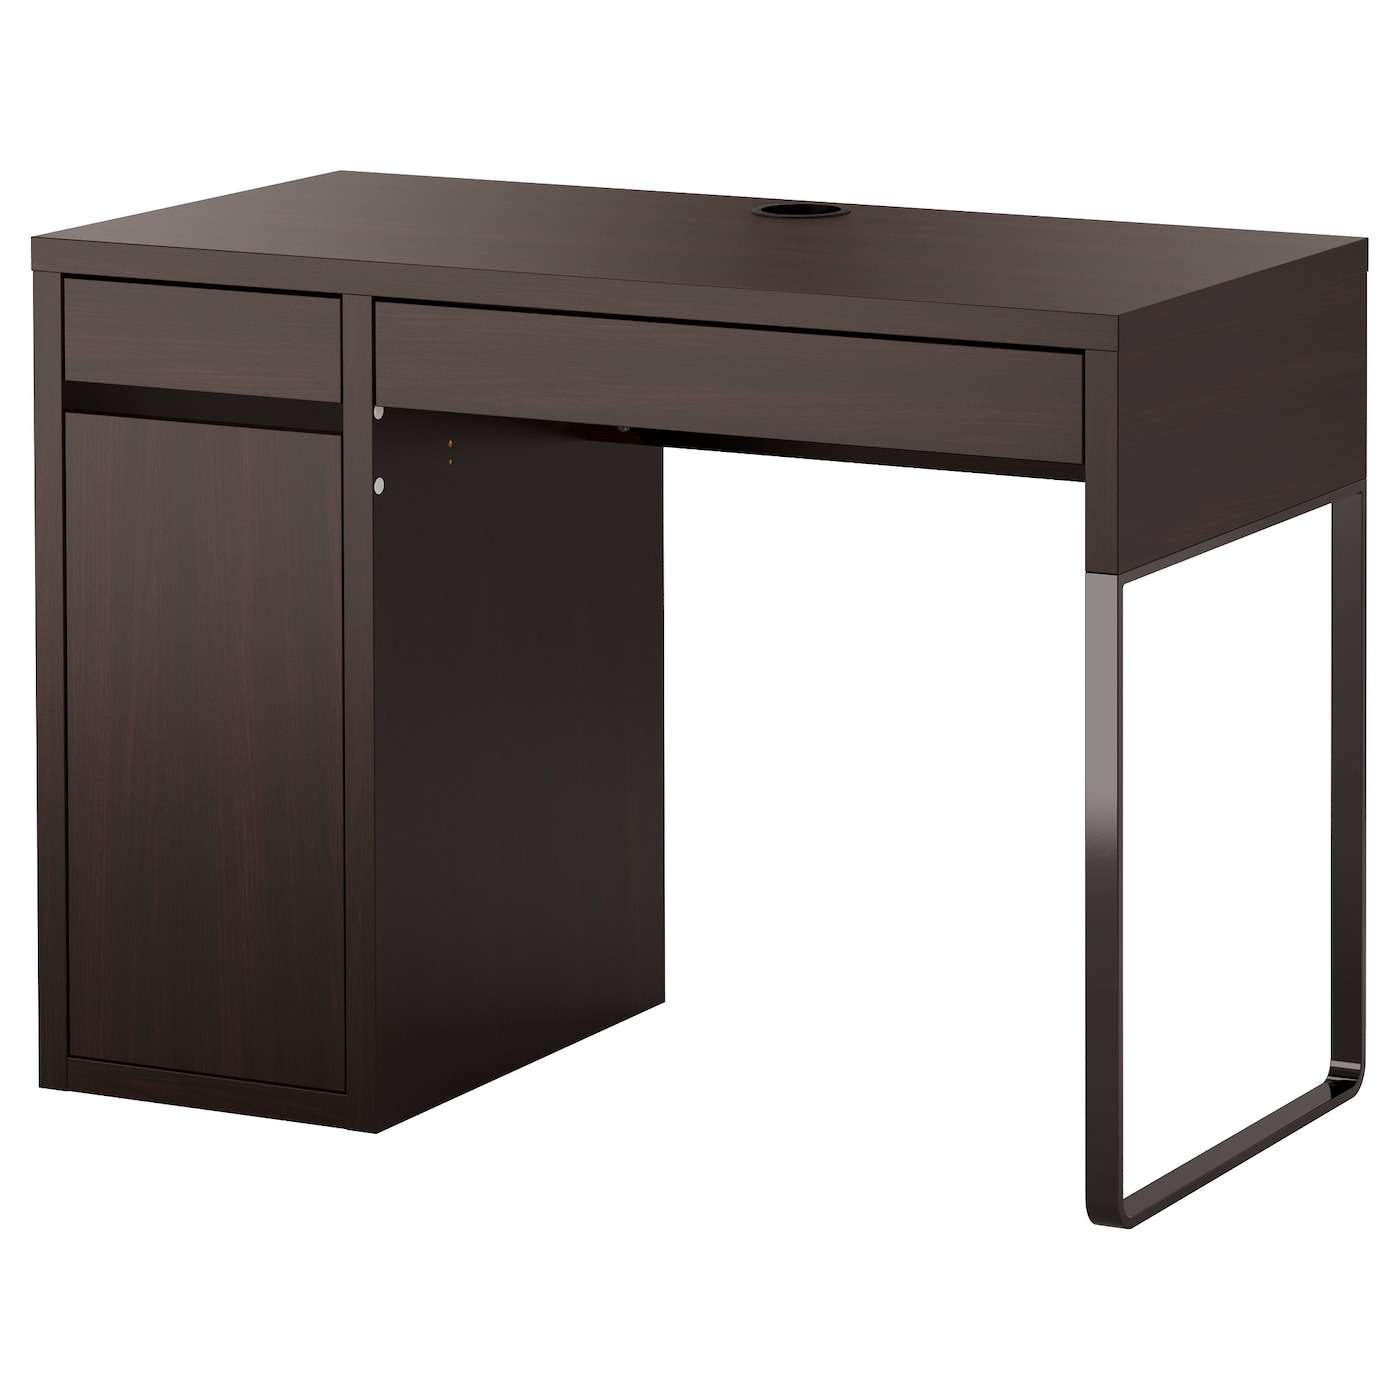 Micke desk black brown 105x50 cm ikea - Cheap black desks ...